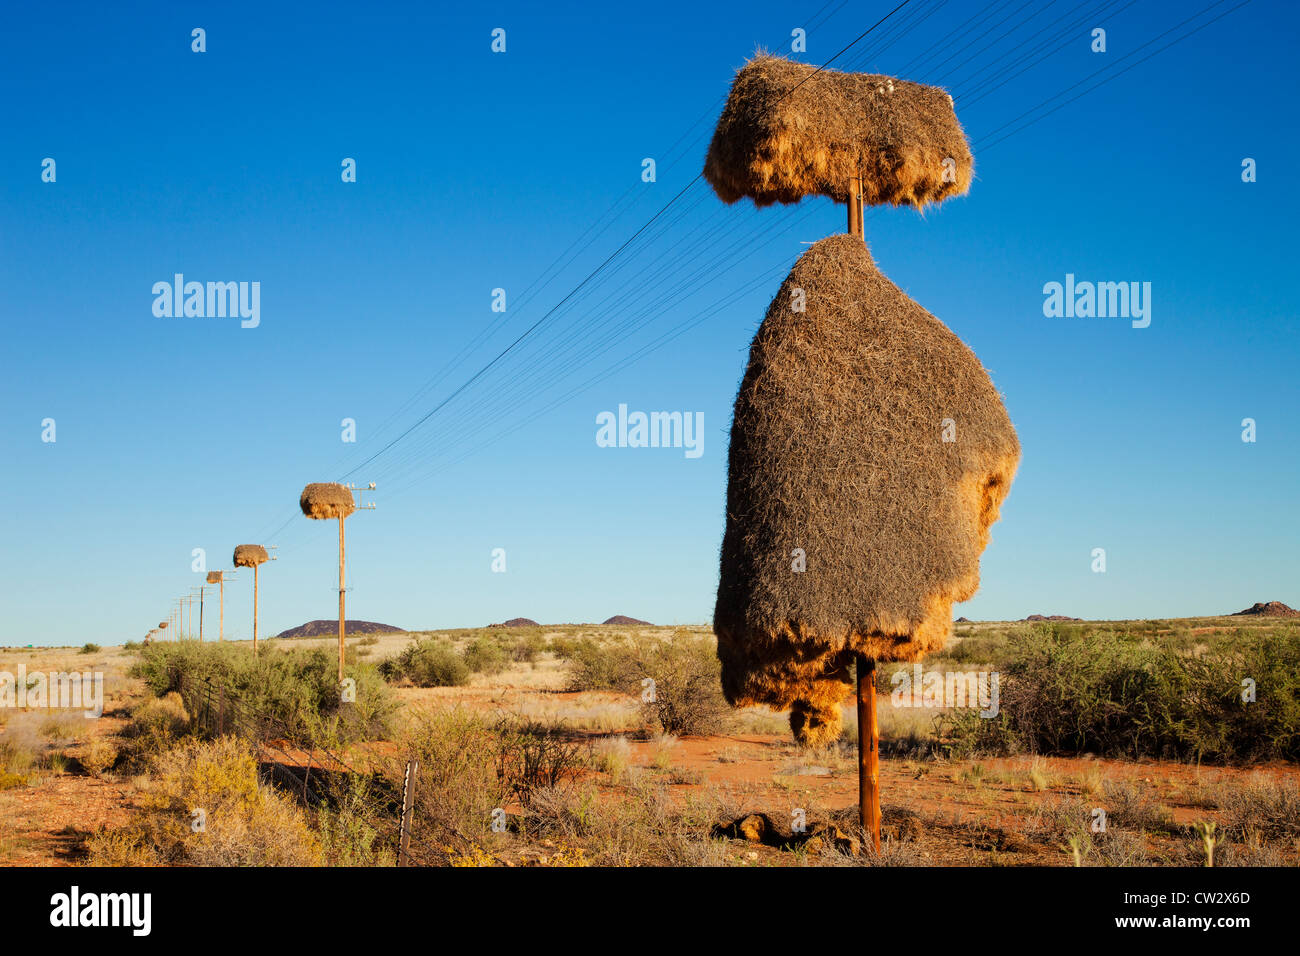 Sociable Weaver nest (Philetairus socius)made on a telephone pole.Namibia - Stock Image